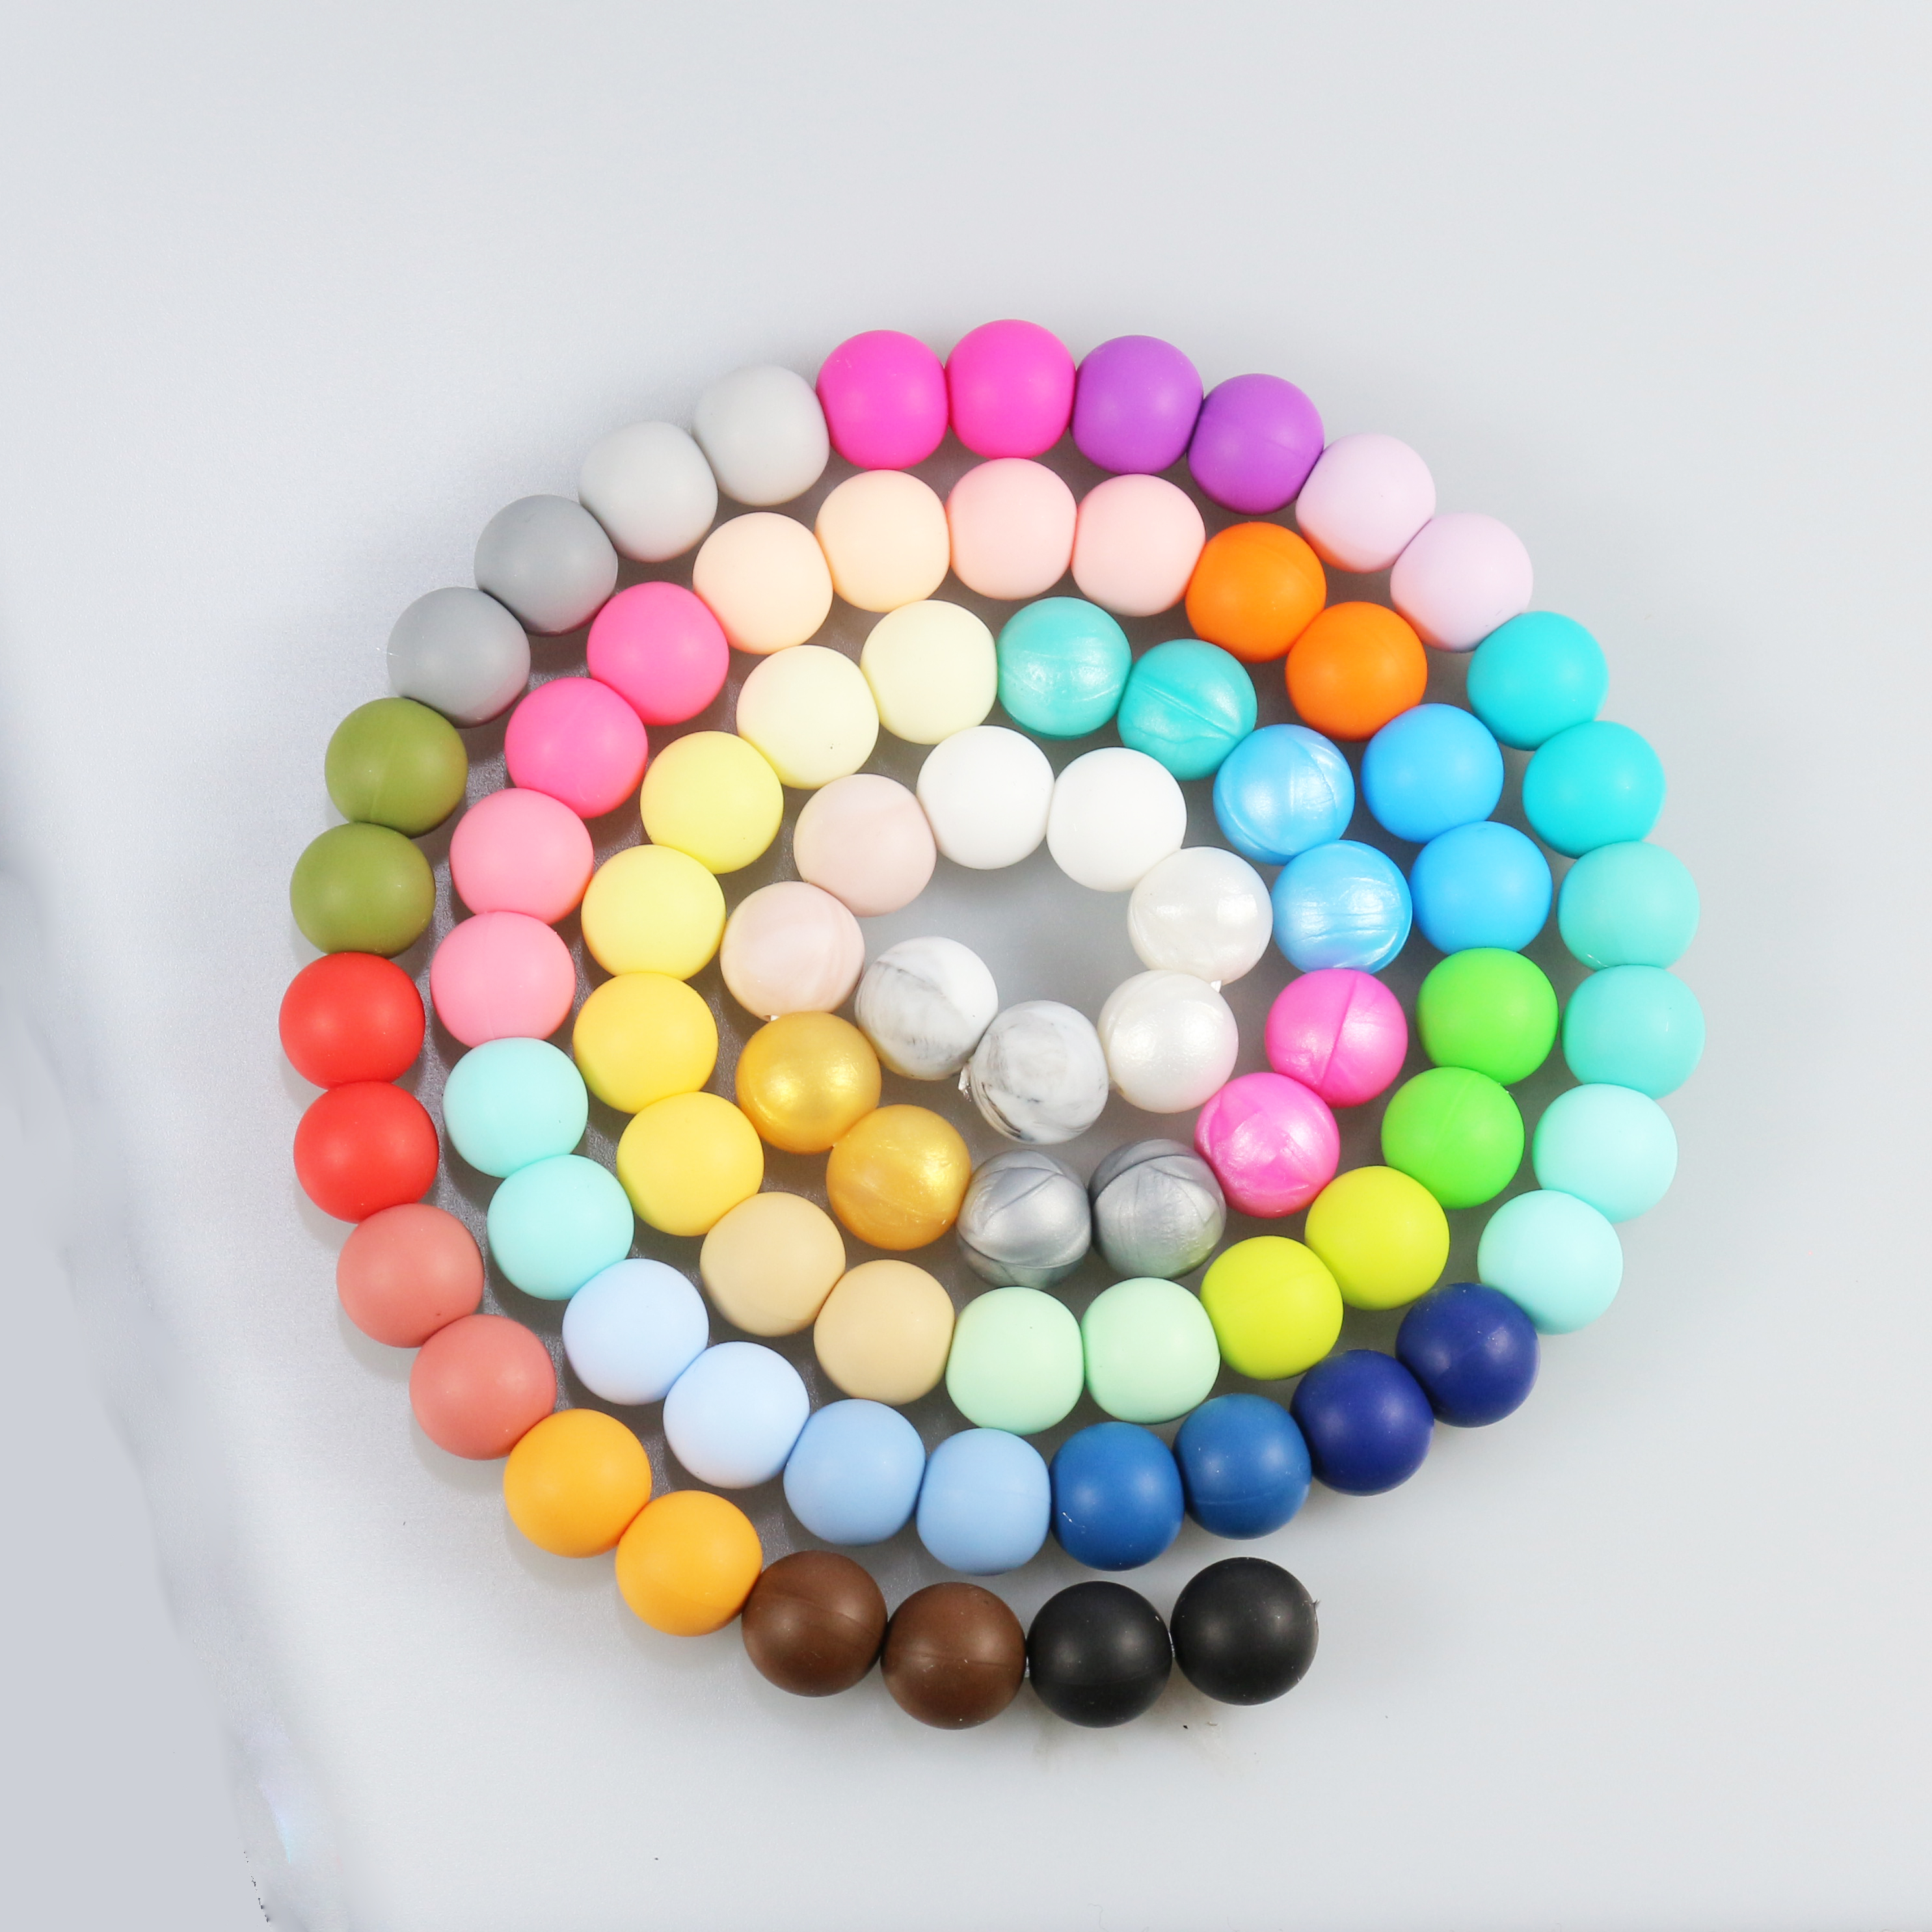 NEW! 15MM Round bead 100PCS/lot Silicone Teething Necklace beads 40 colors Food Grade Silicone loose bead for baby chew BPA free